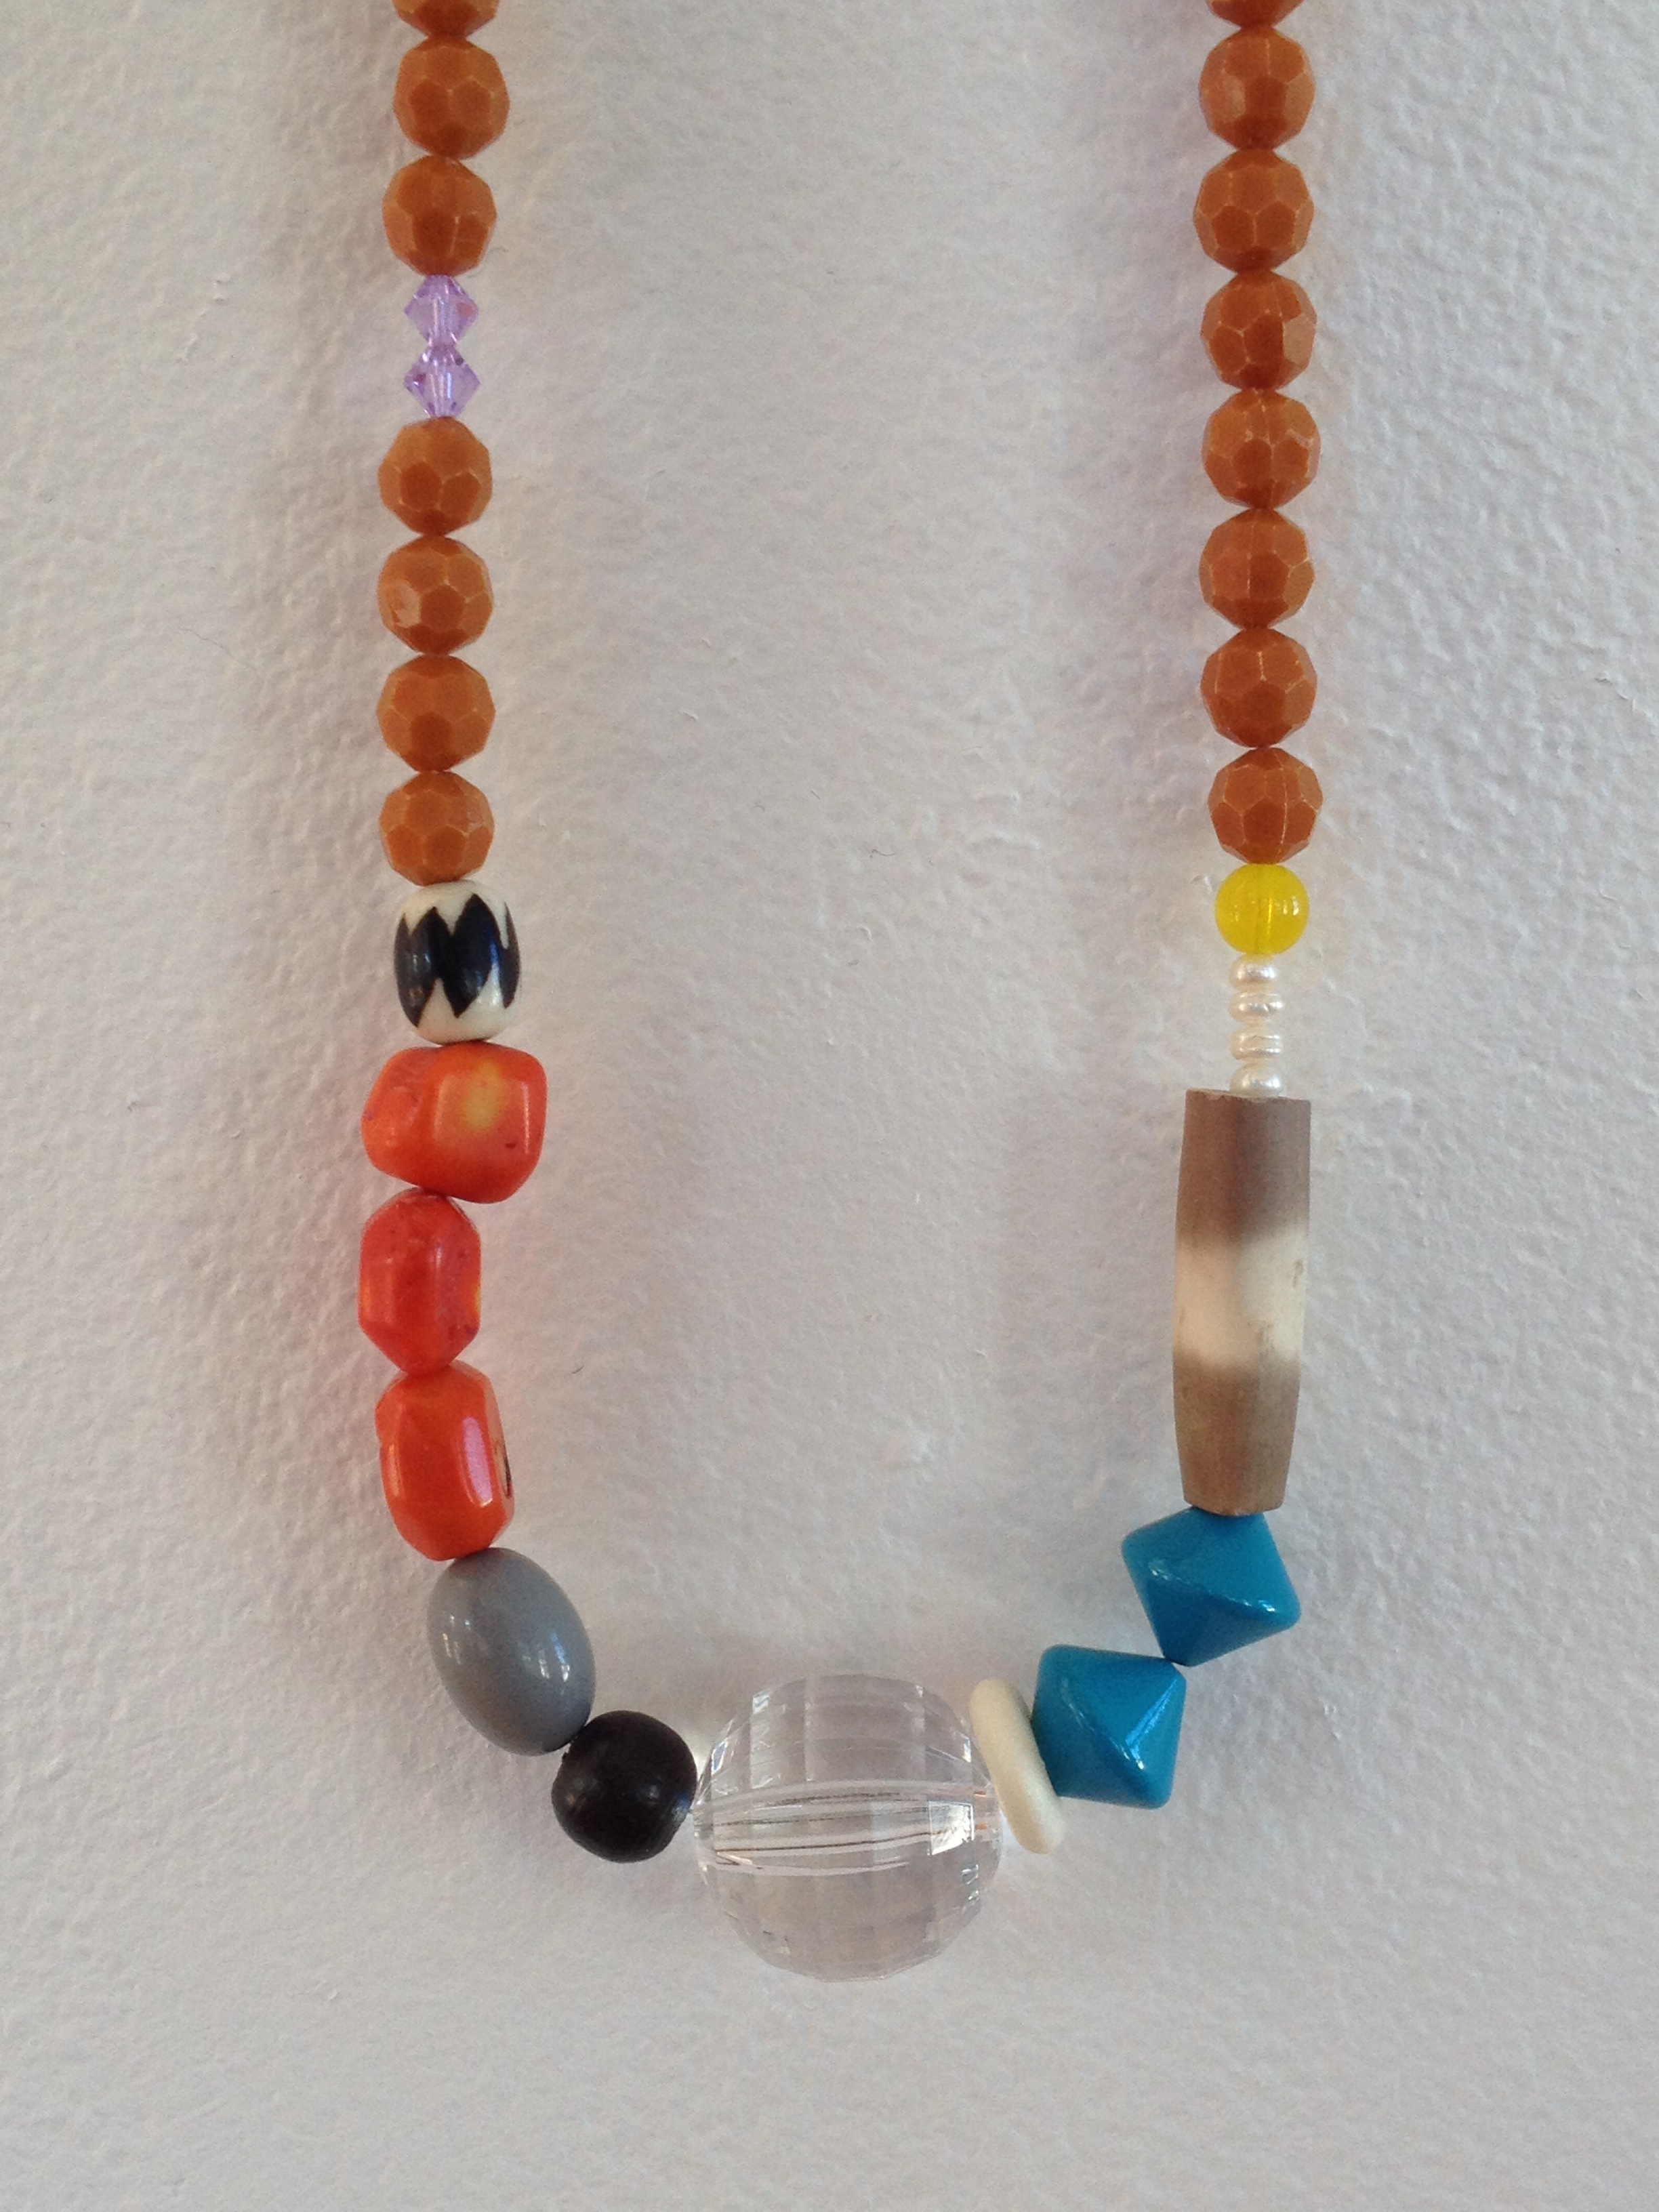 Bonbon_Necklace_12_detail_2.jpg